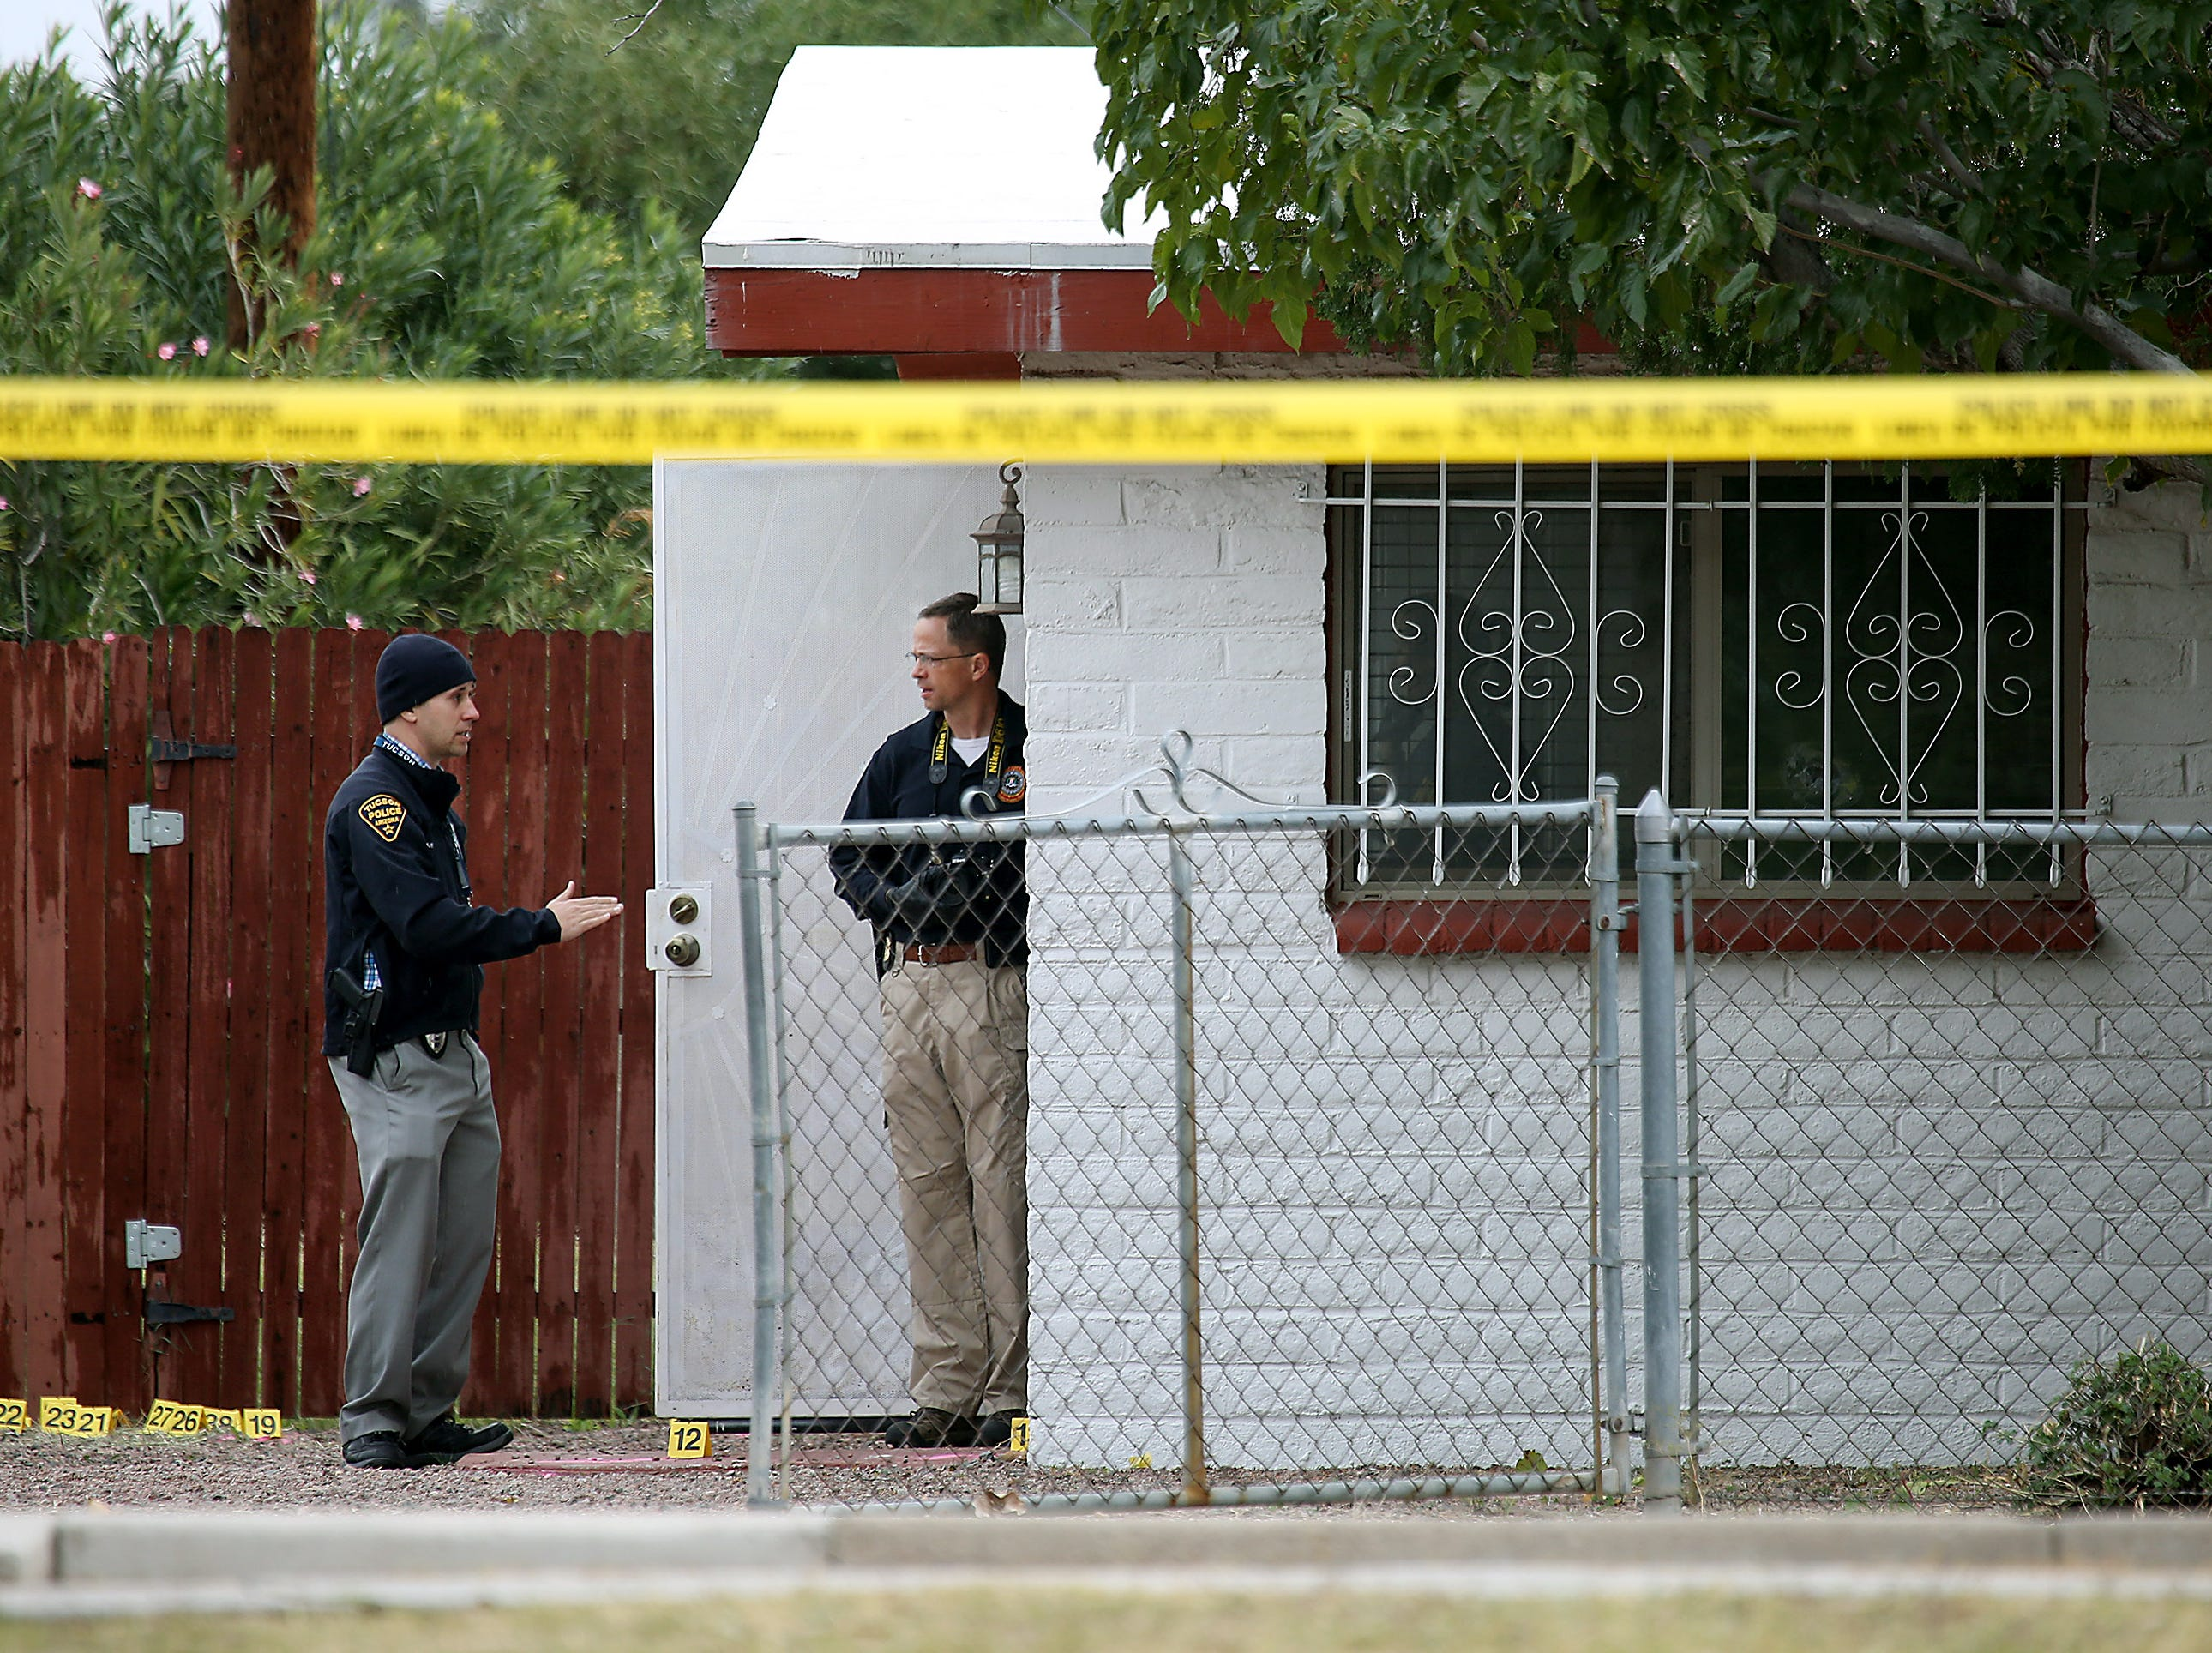 A Tucson Police Department investigator (left) talks with another law-enforcement officer Nov. 30, 2018, at the scene where Deputy U.S. Marshal Chase White was serving a felony arrest warrant when he was shot and killed Nov. 29 outside a north Tucson house.